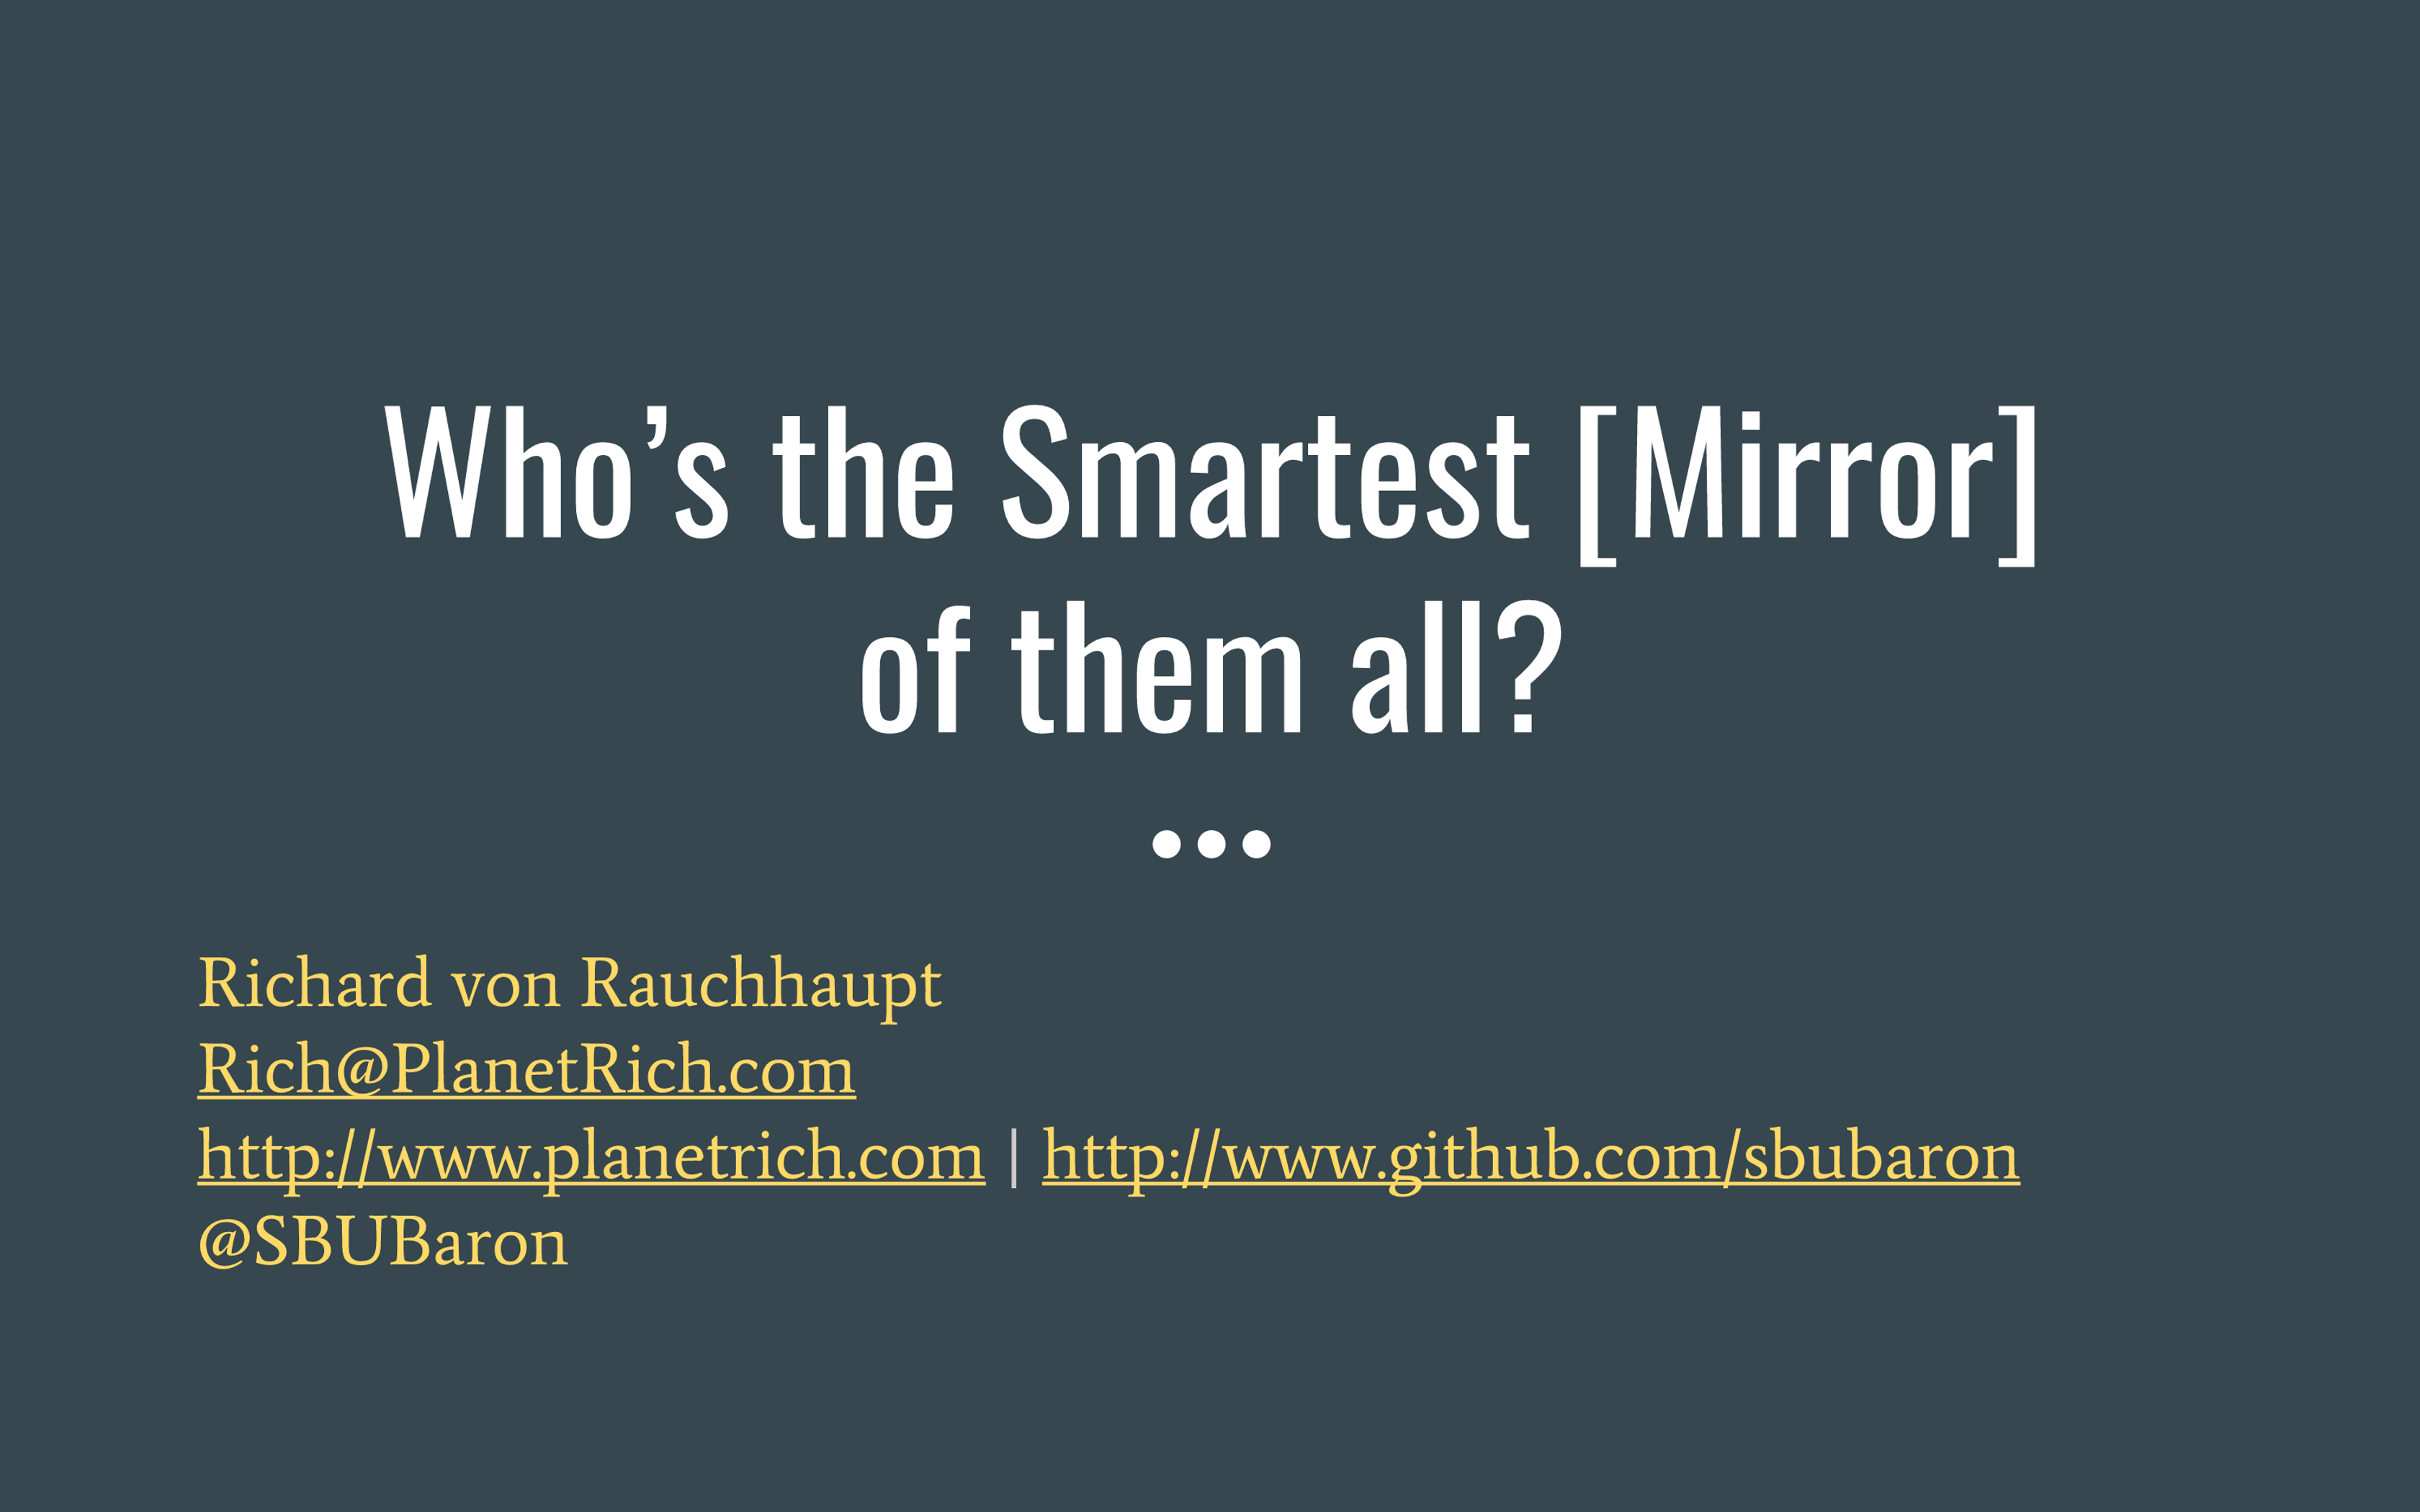 Who's the Smartest [Mirror] of Them All?